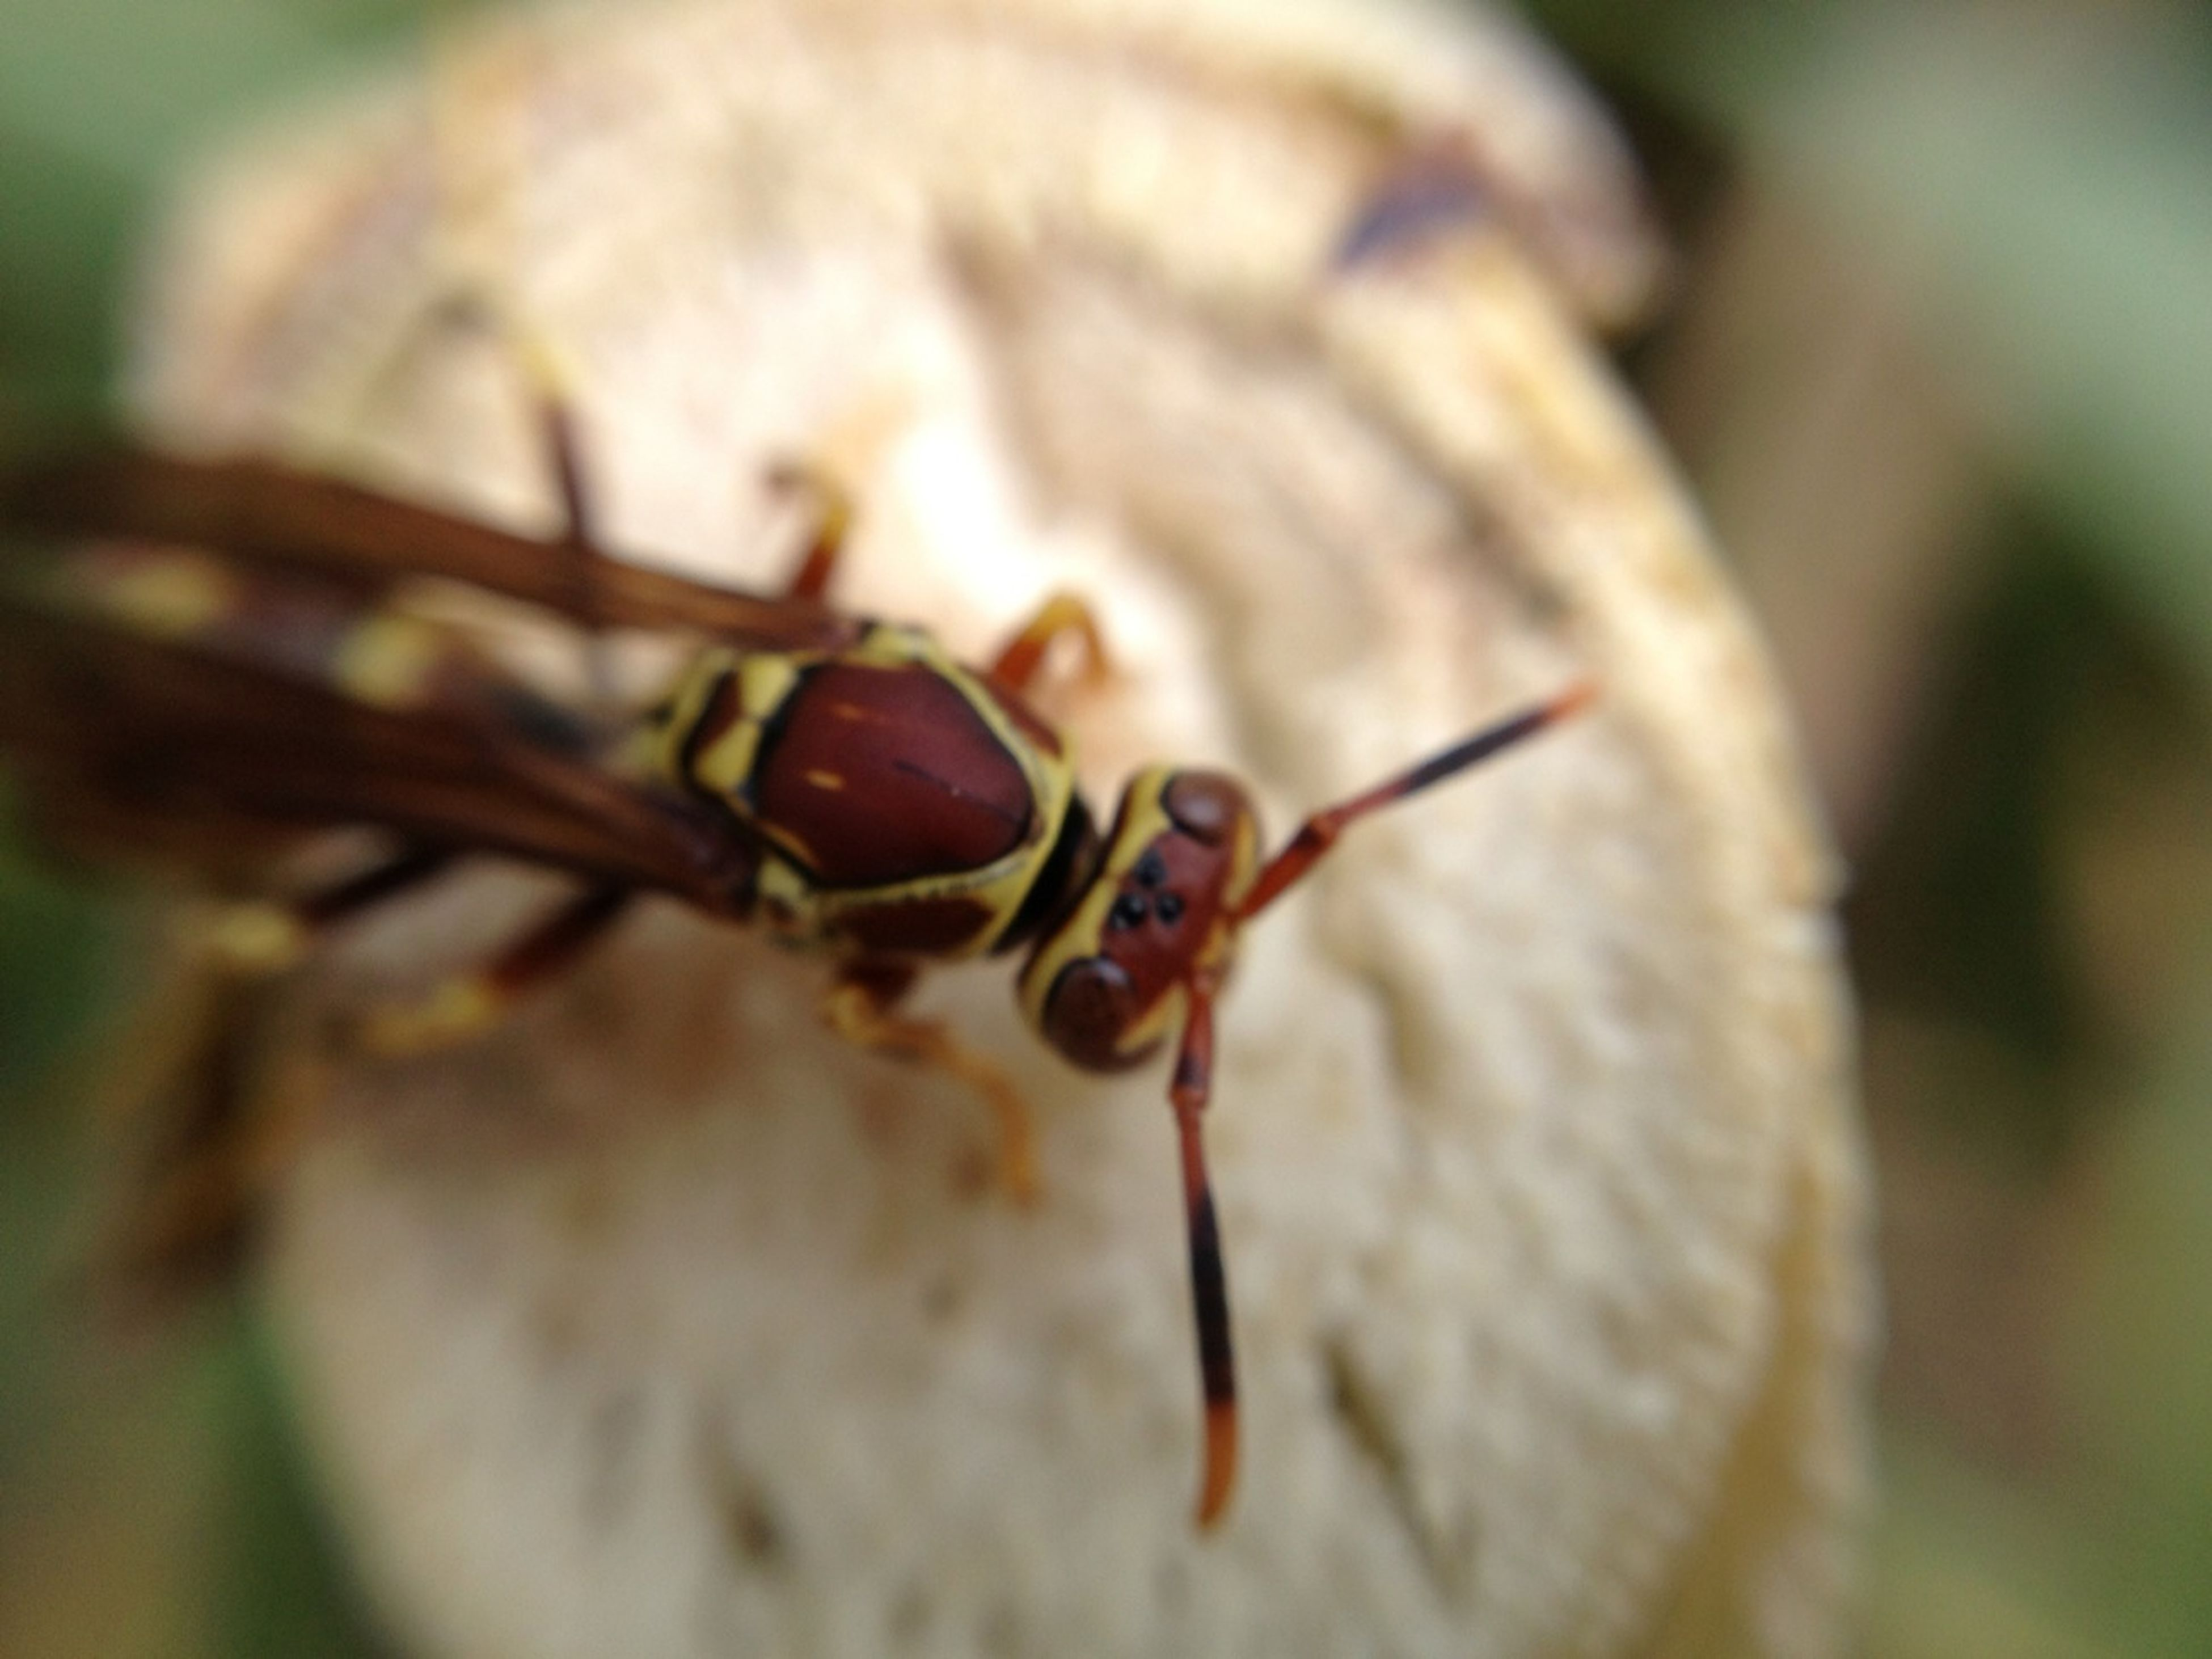 animal themes, one animal, insect, animals in the wild, wildlife, close-up, focus on foreground, selective focus, animal antenna, dragonfly, nature, day, no people, outdoors, grasshopper, plant, zoology, twig, leaf, snail